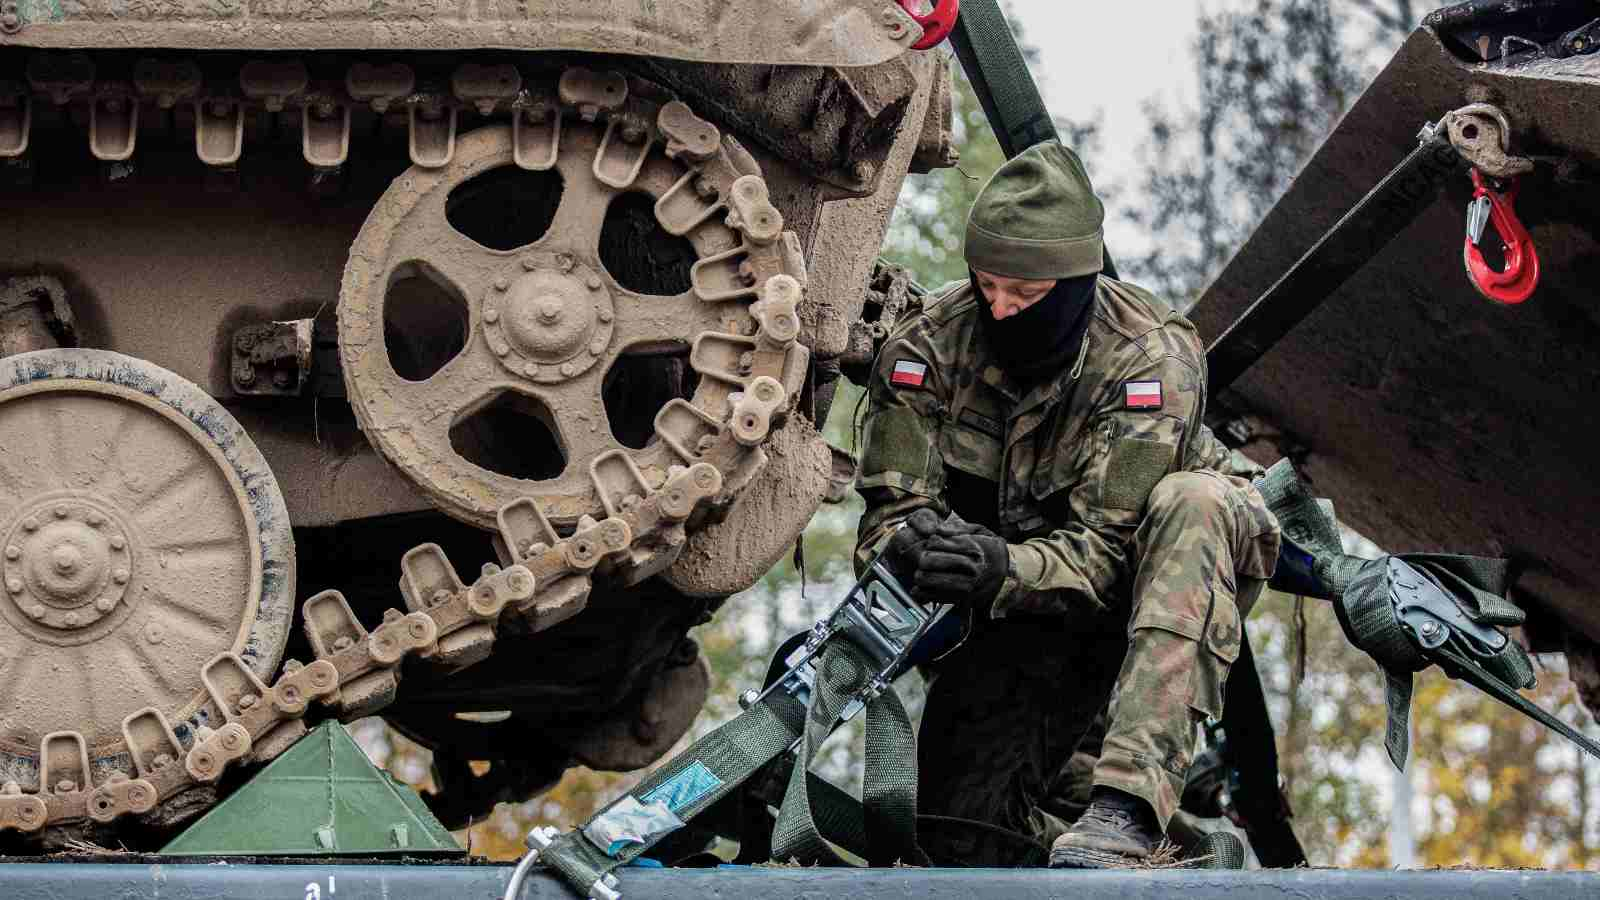 A Polish soldier walks behind armoured vehicles loaded on to rail cars during Exercise Brilliant Jump 20. Brilliant Jump is a deployment exercise designed to test the readiness of NATO's spearhead unit, the Very High Readiness Joint Task Force. The VJTF deployed to Lithuania by land, air and sea to take part in the Lithuanian national exercise Iron Wolf II. To avoid the spread COVID-19, the deploying forces avoided civilian populations on their way to Lithuania and practiced social distancing.